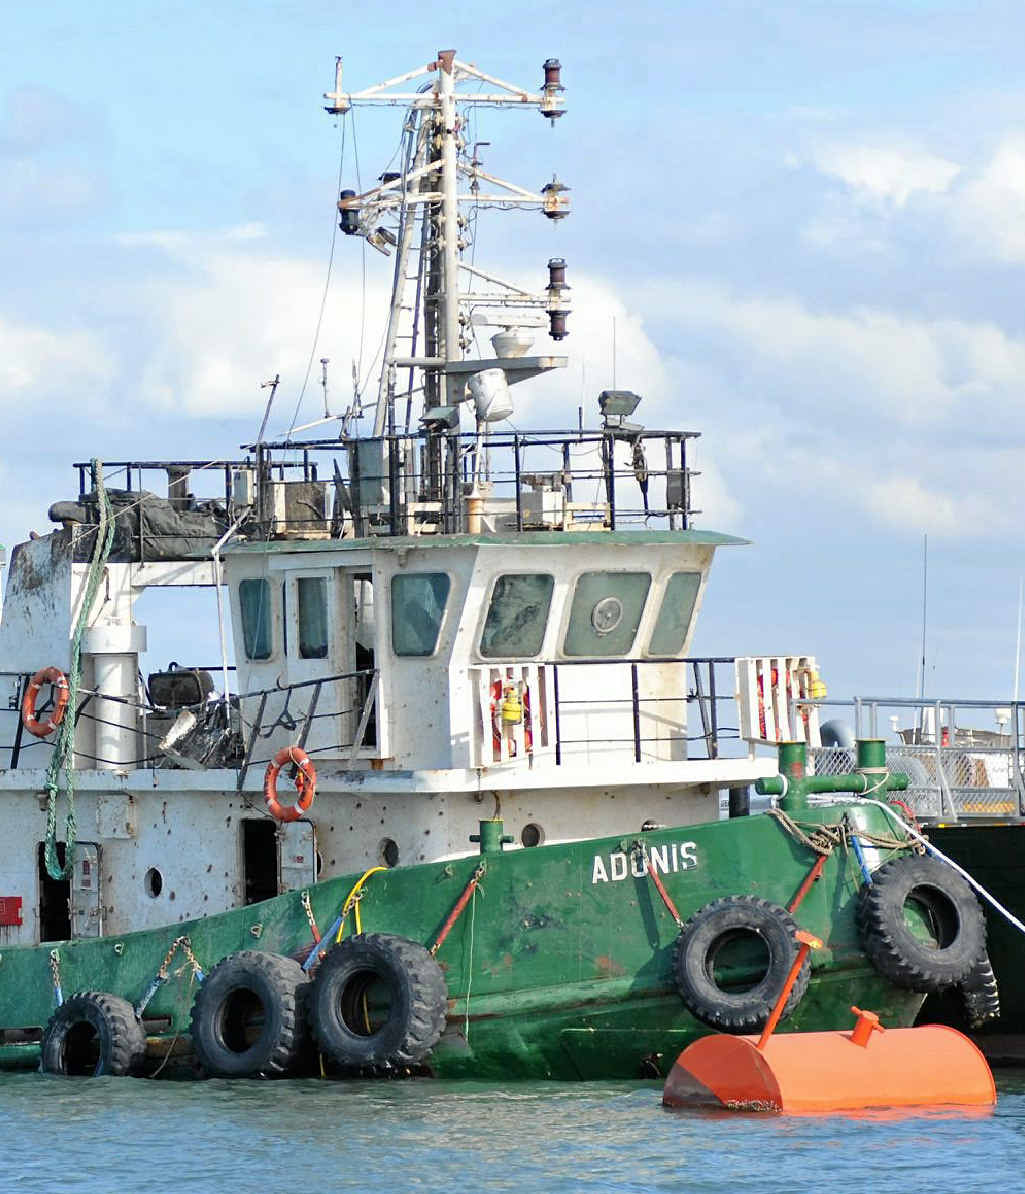 Salvage of the tug boat Adonis, which sank in Gladstone Harbour in 2011.